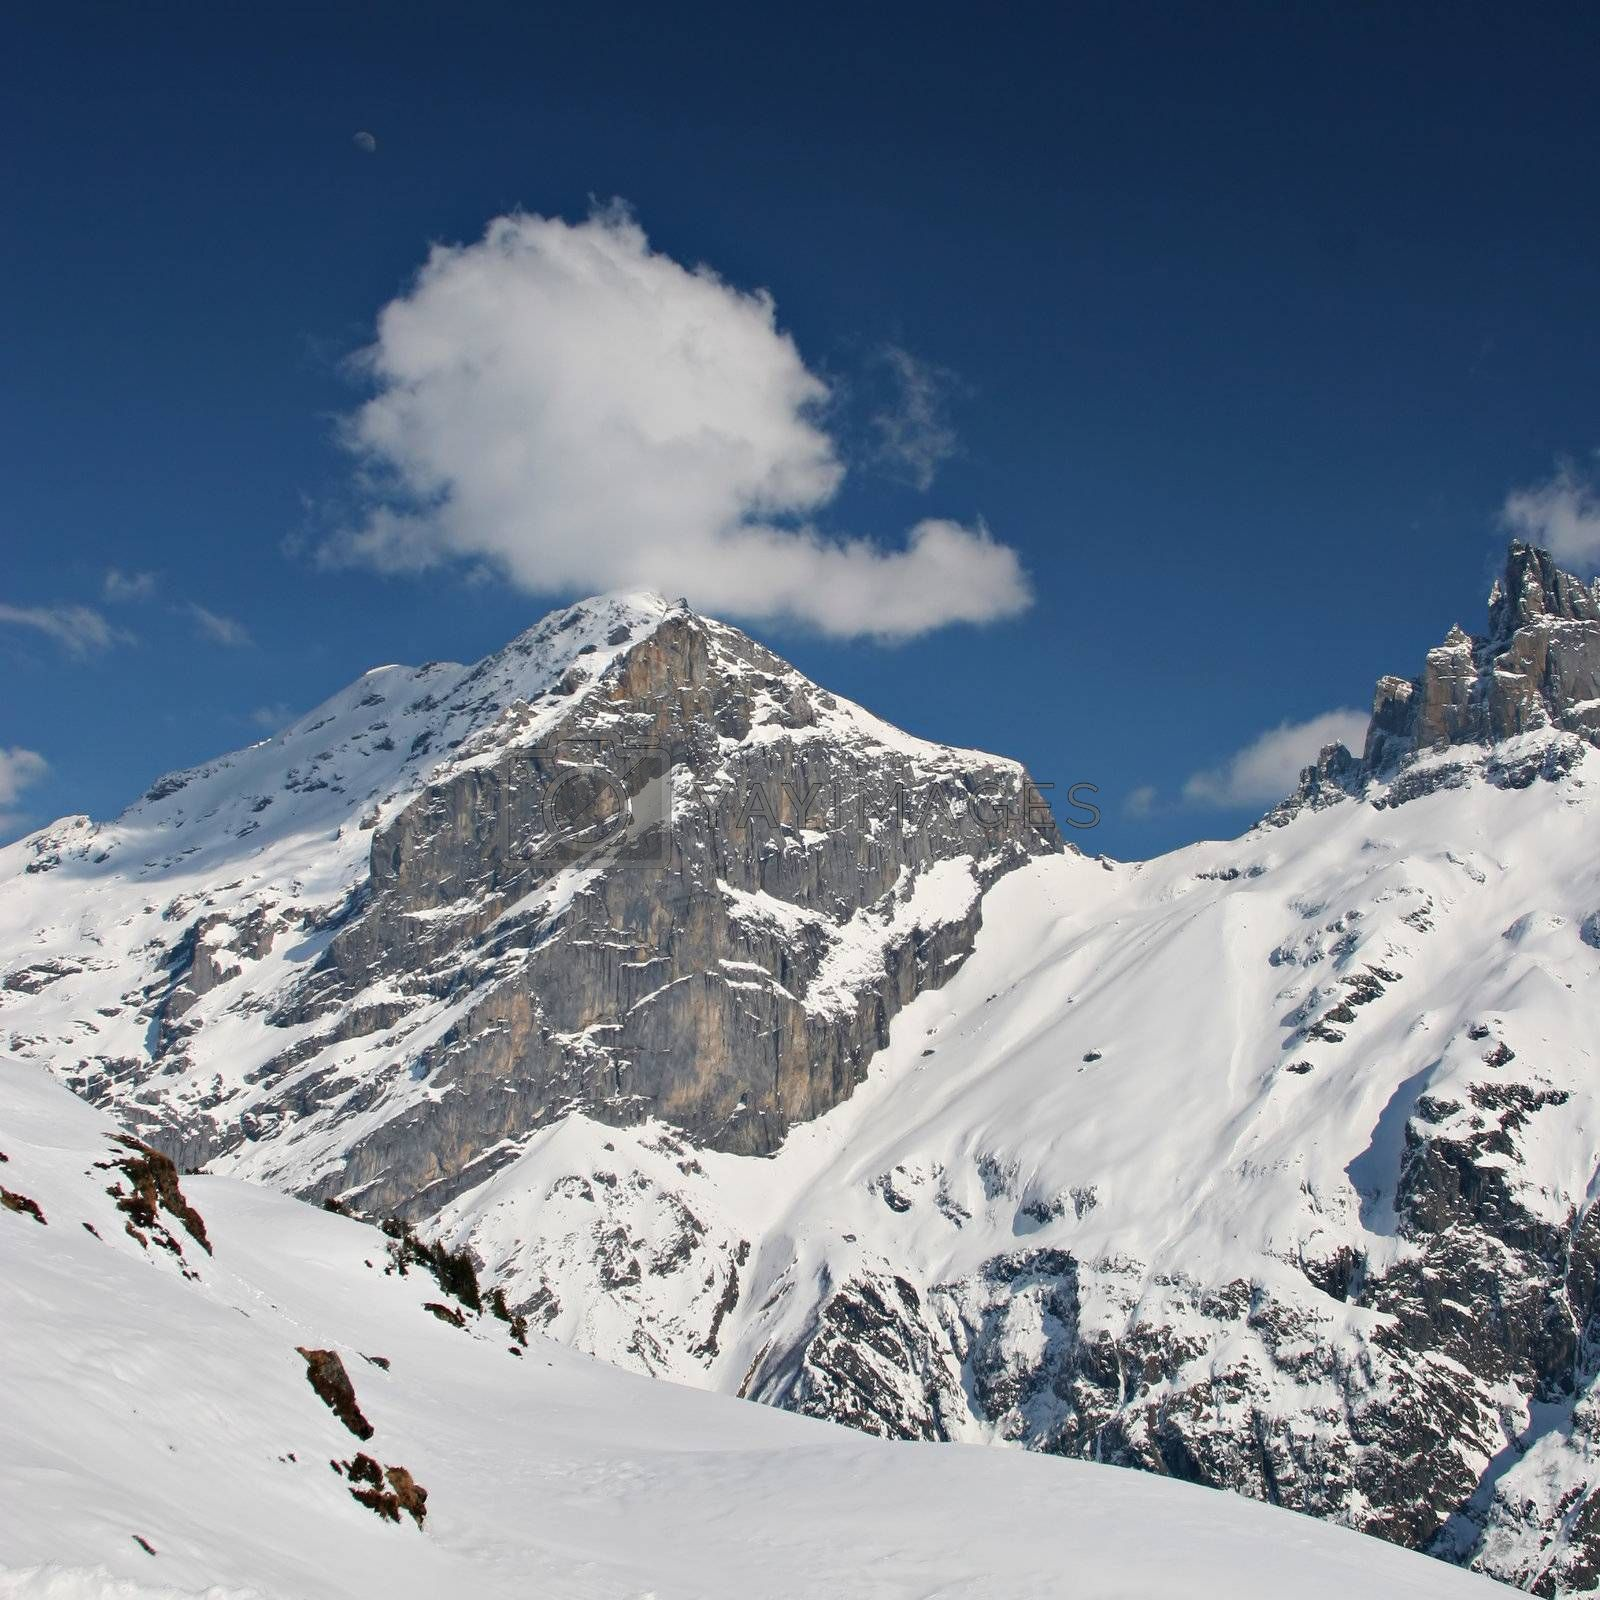 Photo of a mountain and a fluffy white cloud on deep blue sky in the Swiss Alps.